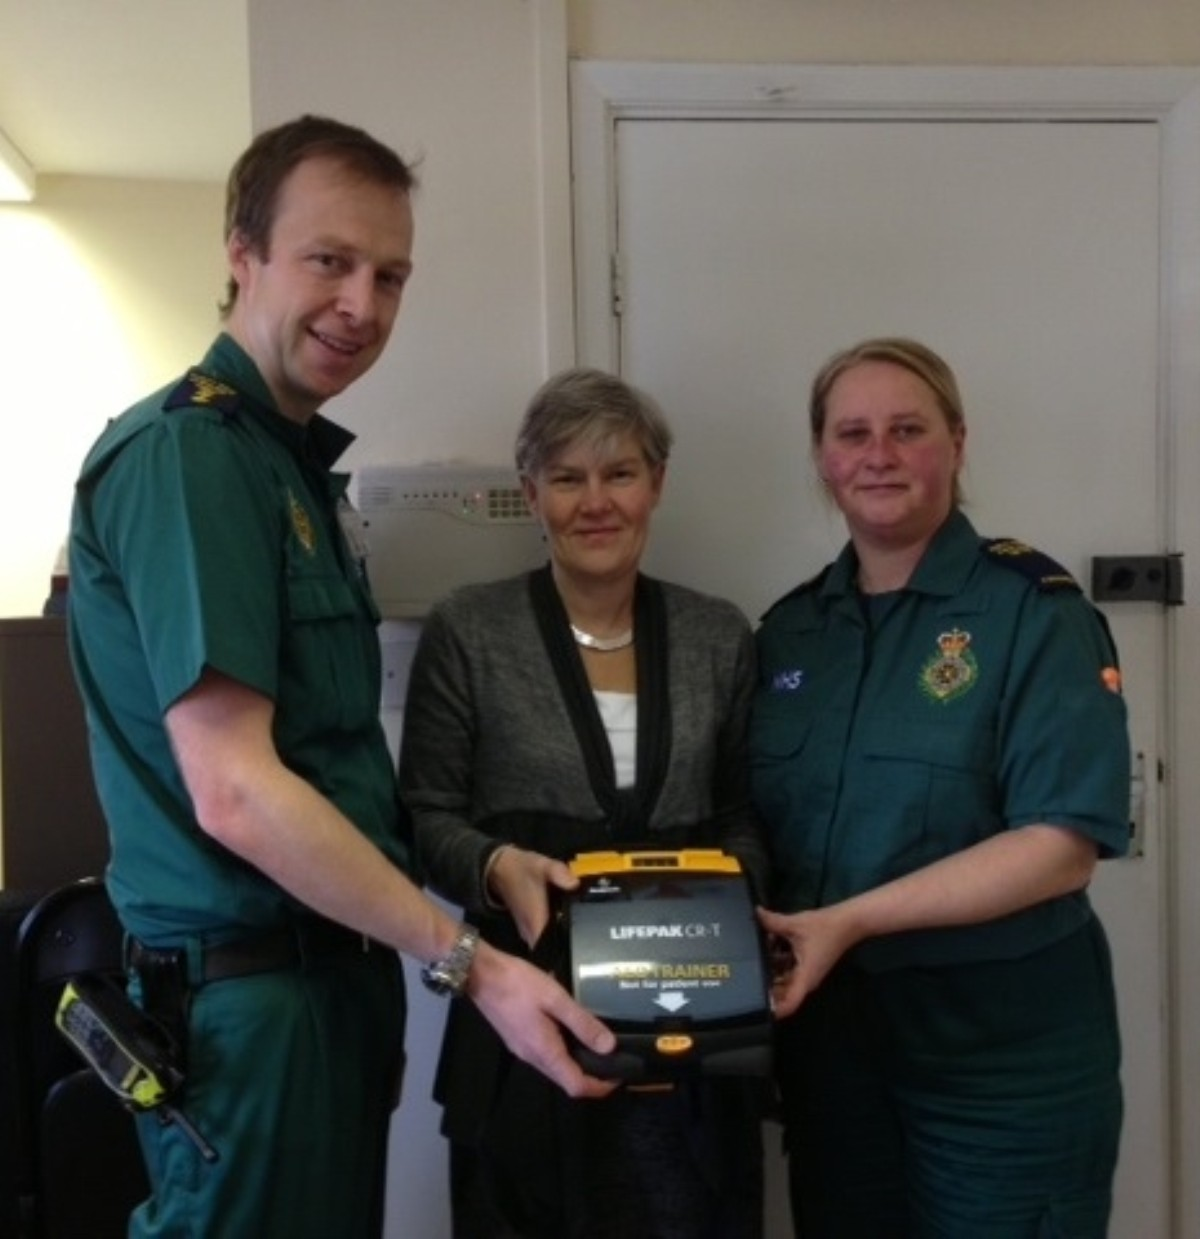 Kate Green MP holding a defibrillator with senior paramedic and community resuscitation manager, David McNally, and his colleague Lisa, both from the North West Ambulance Service NHS Trust